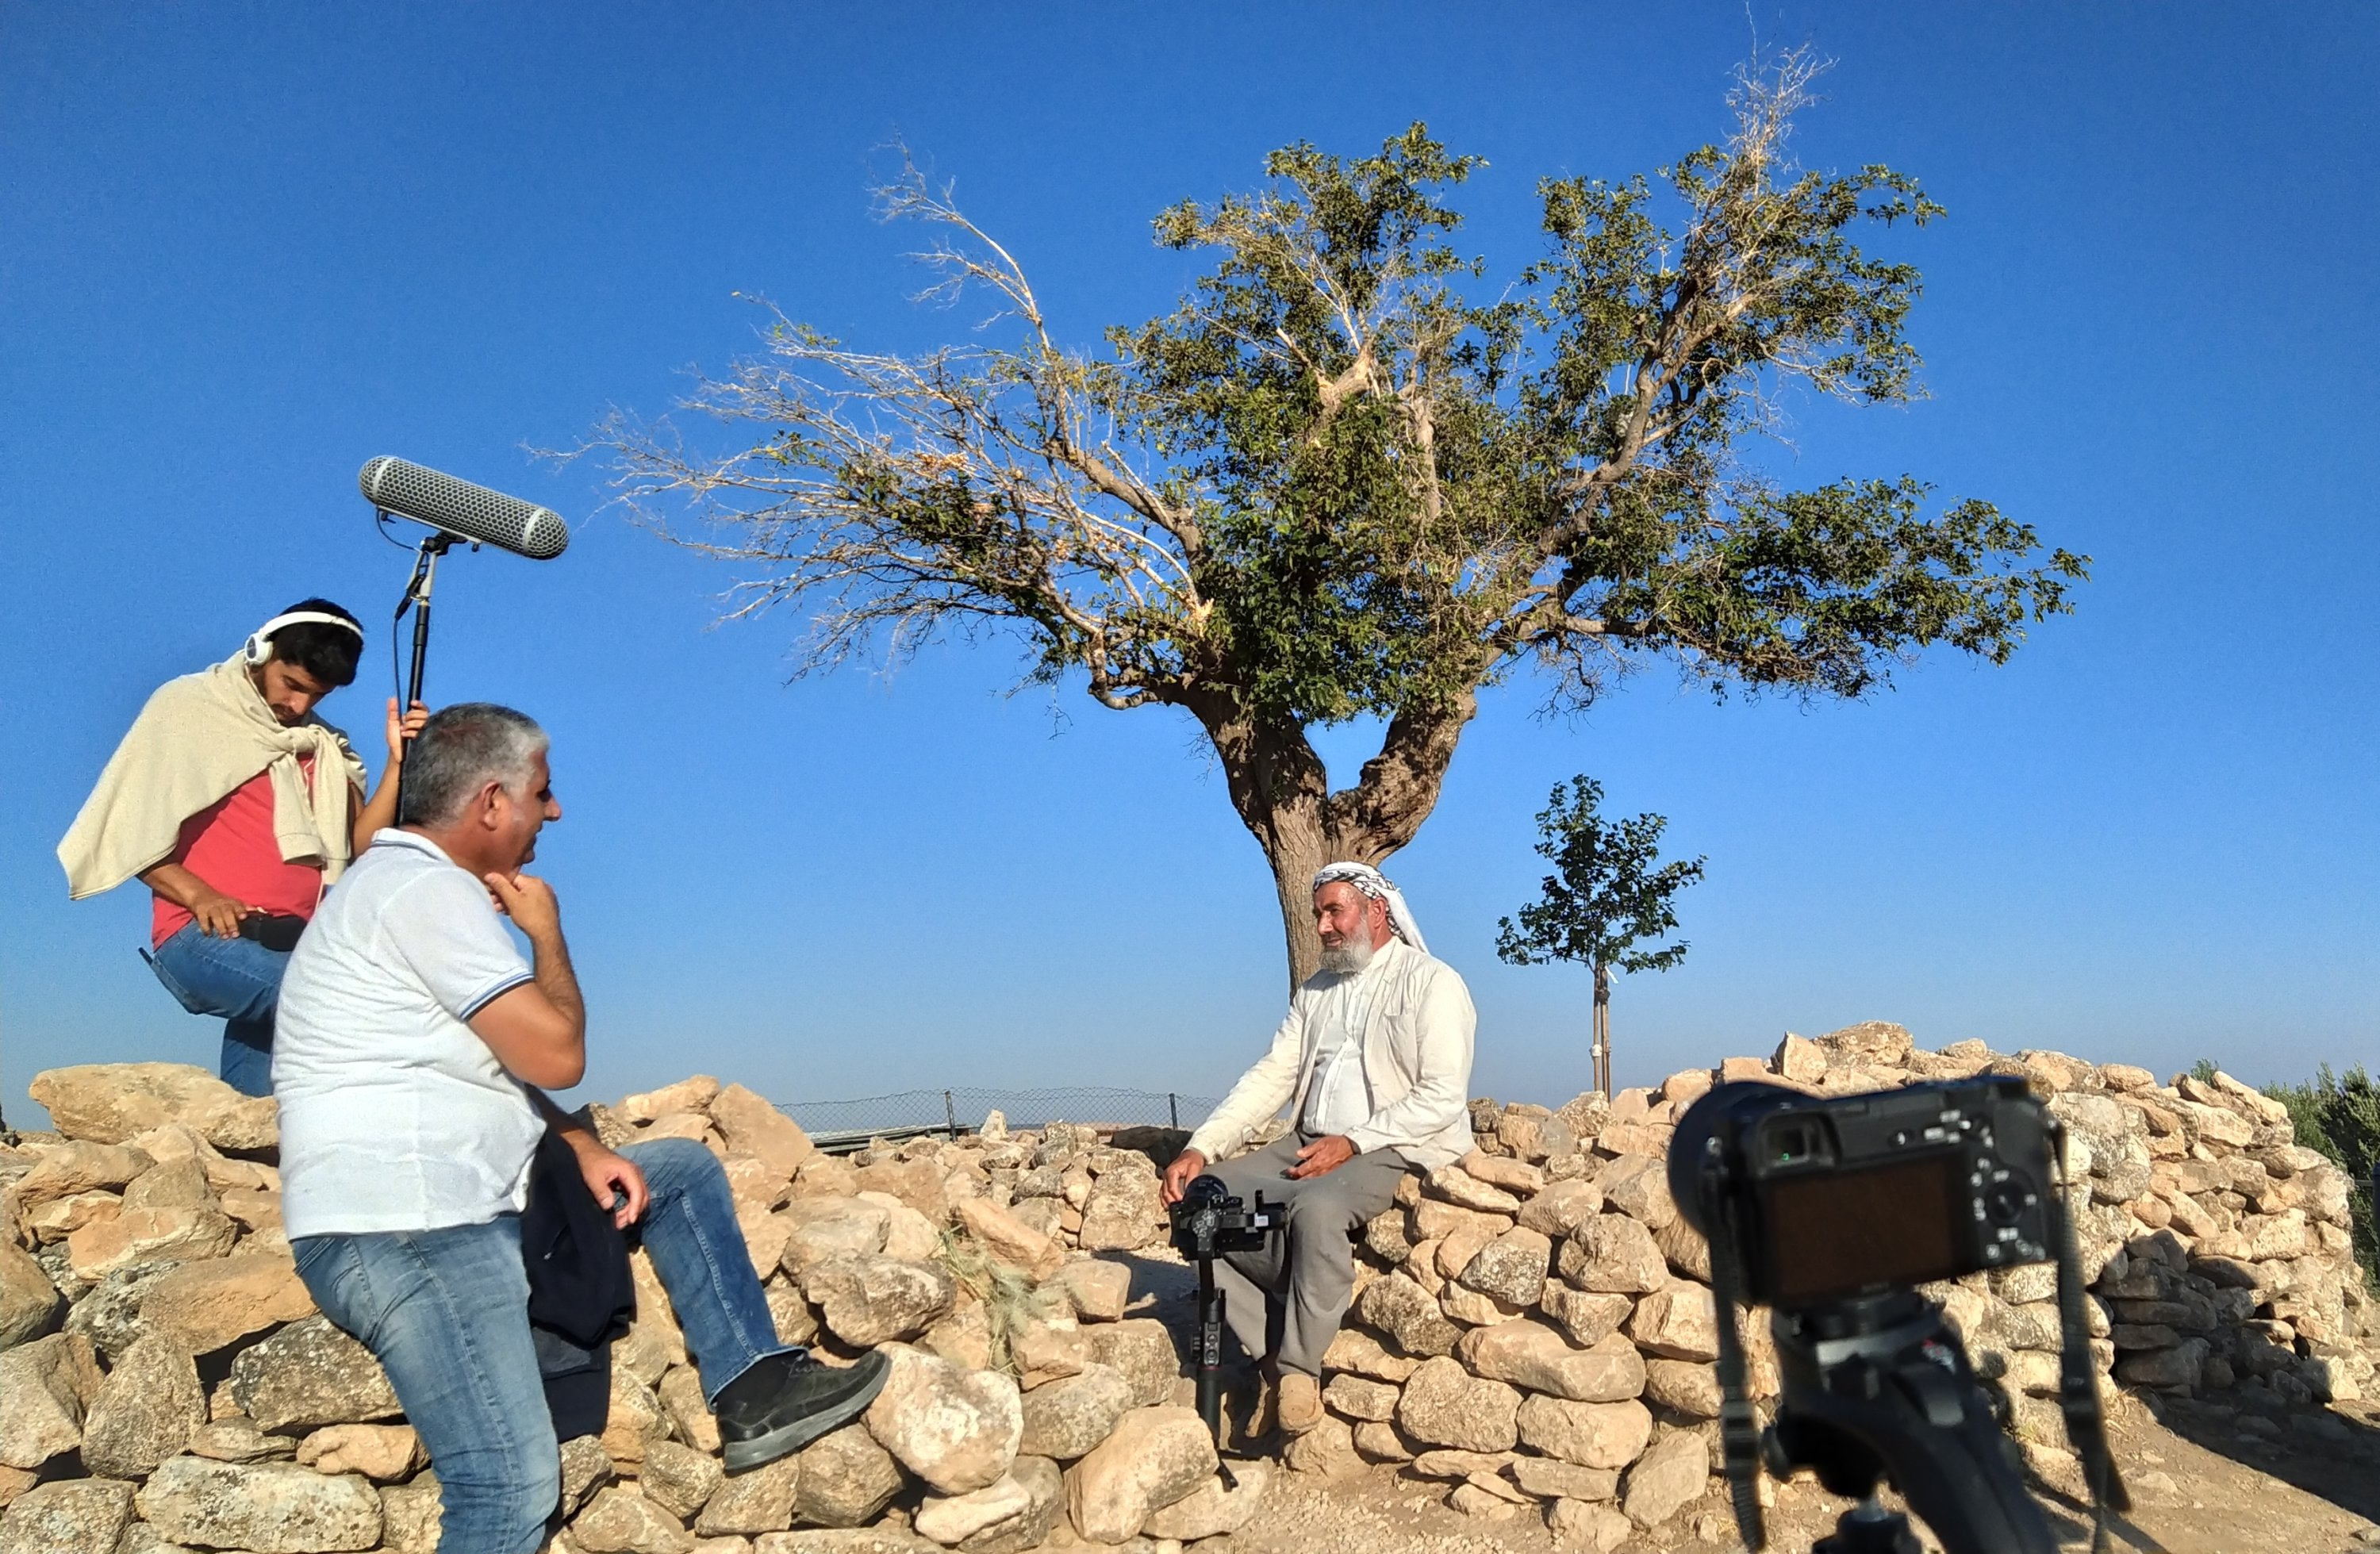 A photo from the filming of the documentary